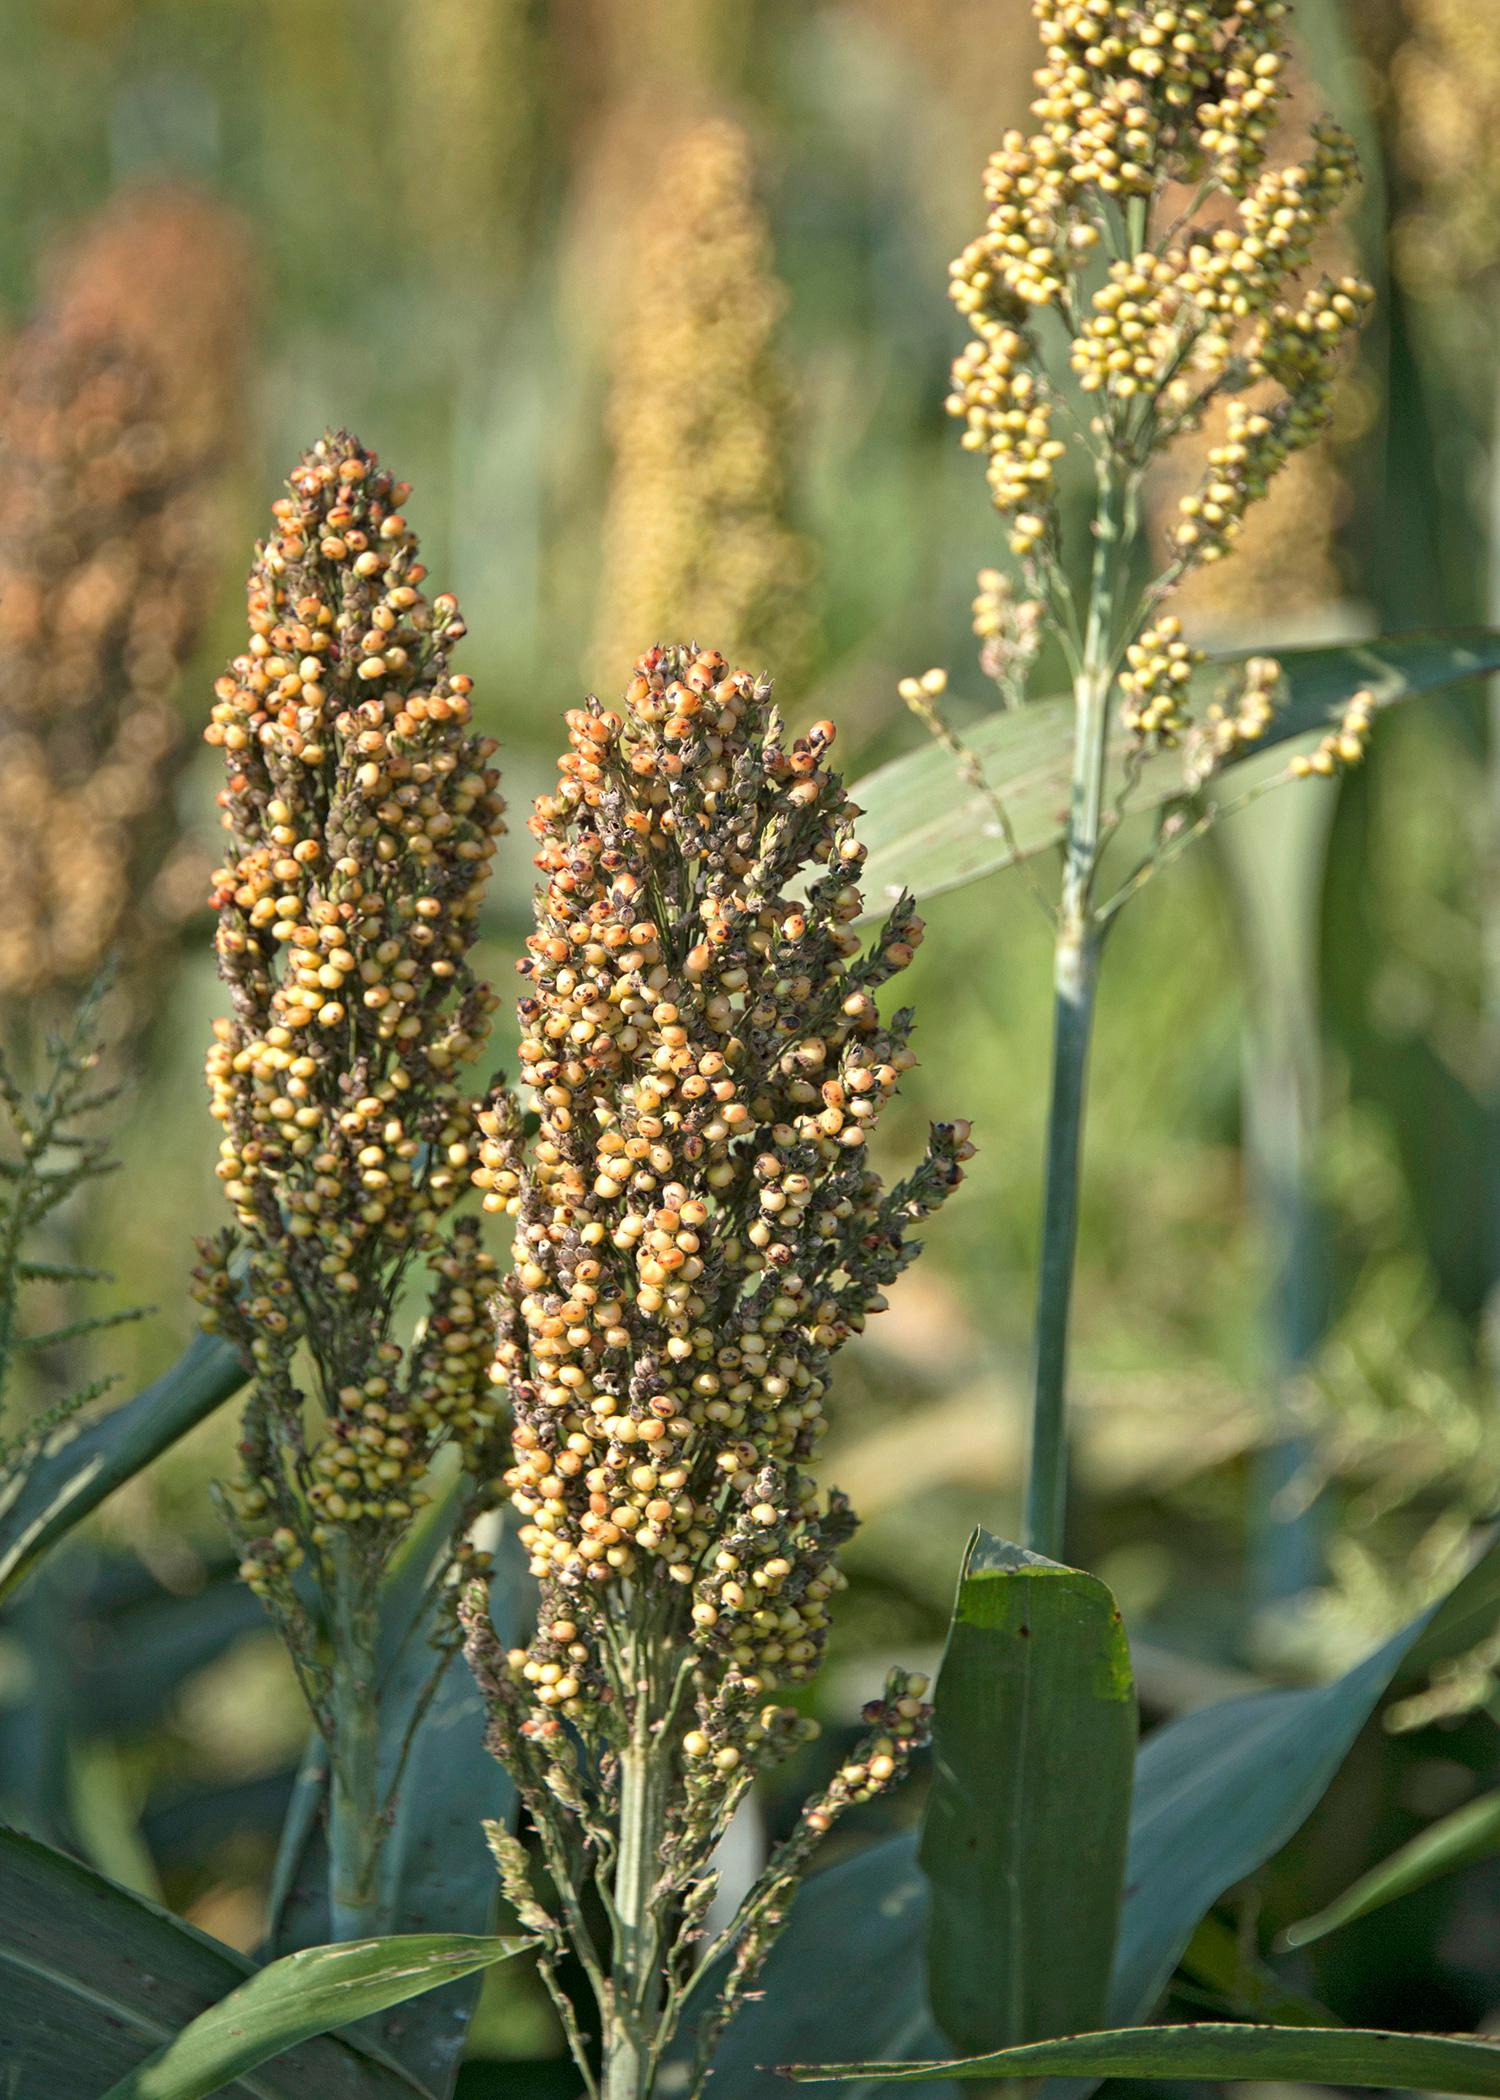 Seed treatment and increased crop monitoring will be critical in preventing sugarcane aphids from causing major damage to future grain sorghum crops in Mississippi. (File photo by MSU Ag Communications/Kat Lawrence)